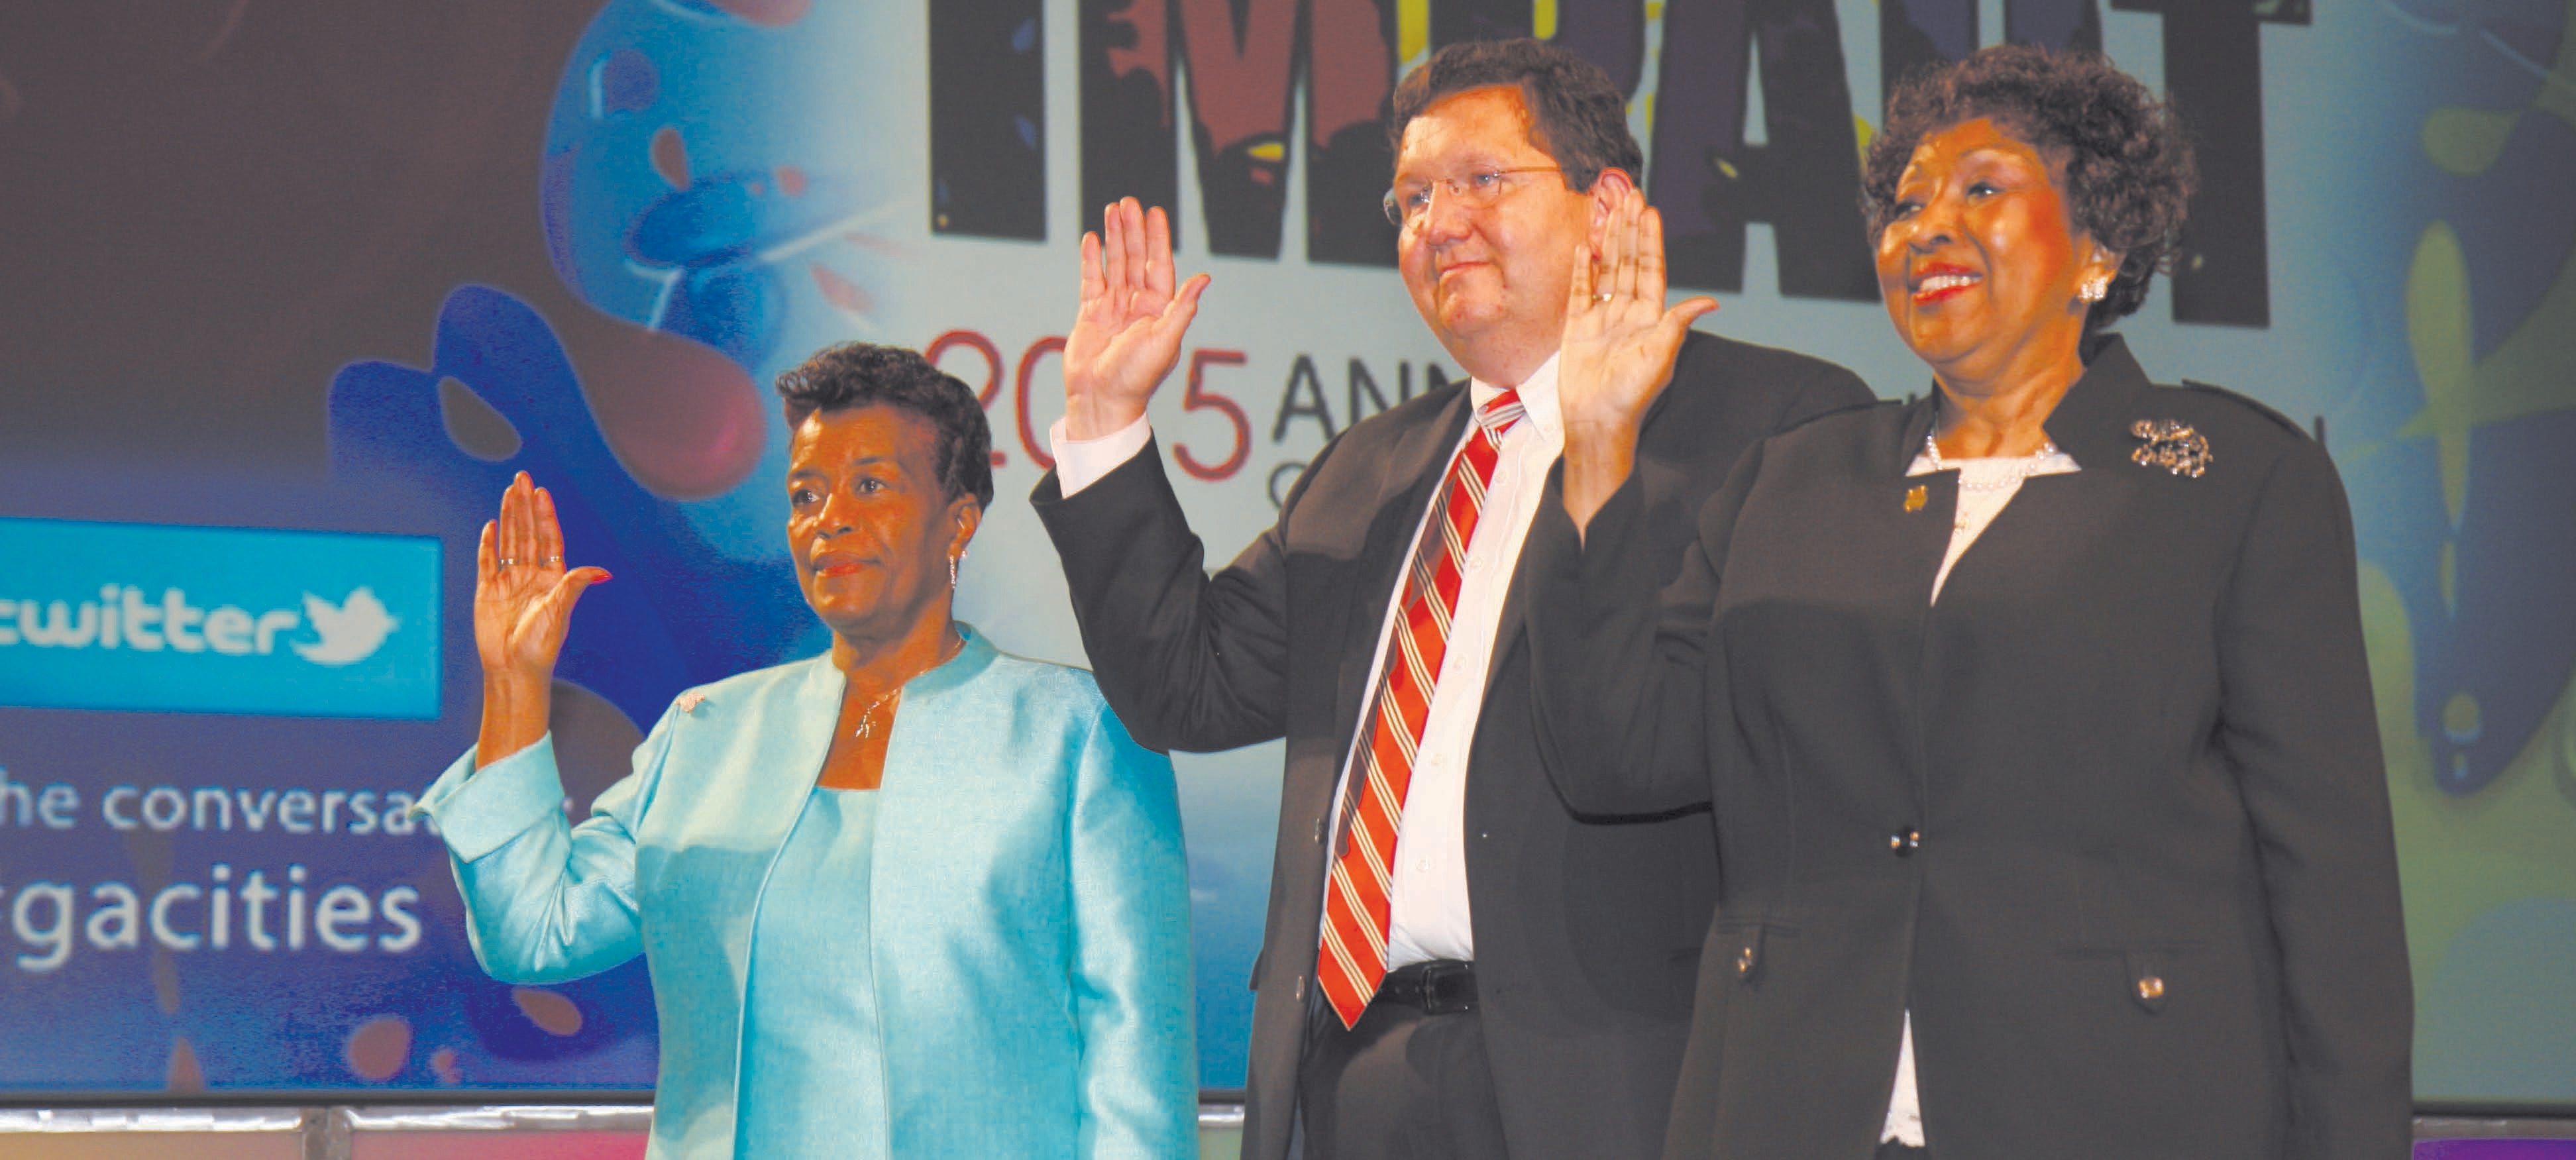 Mayor Jackson is sworn in as 1st Vice President of the Georgia Municipal Association, alongside 2nd Vice President Dallas Mayor Boyd Austin and 3rd Vice President Albany Mayor Dorothy Hubbard.